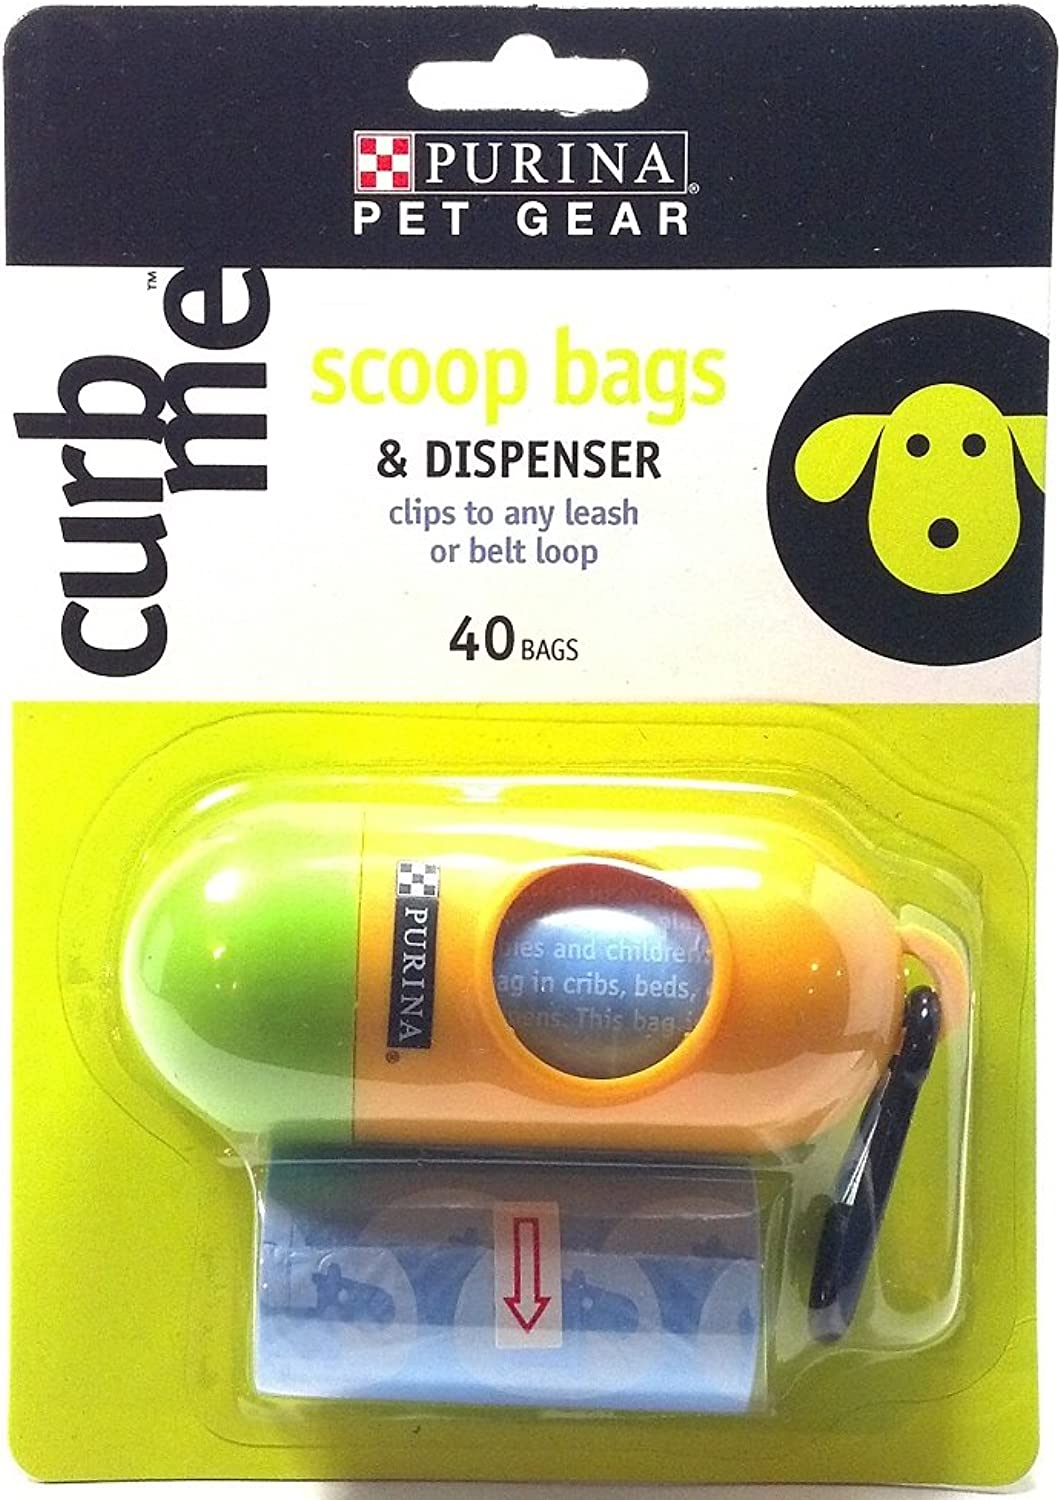 Purina Pet Gear Curb Me Scoop Bags and Dispenser Clips to Any Leash or Belt Loop 40 Bags (1 Each)